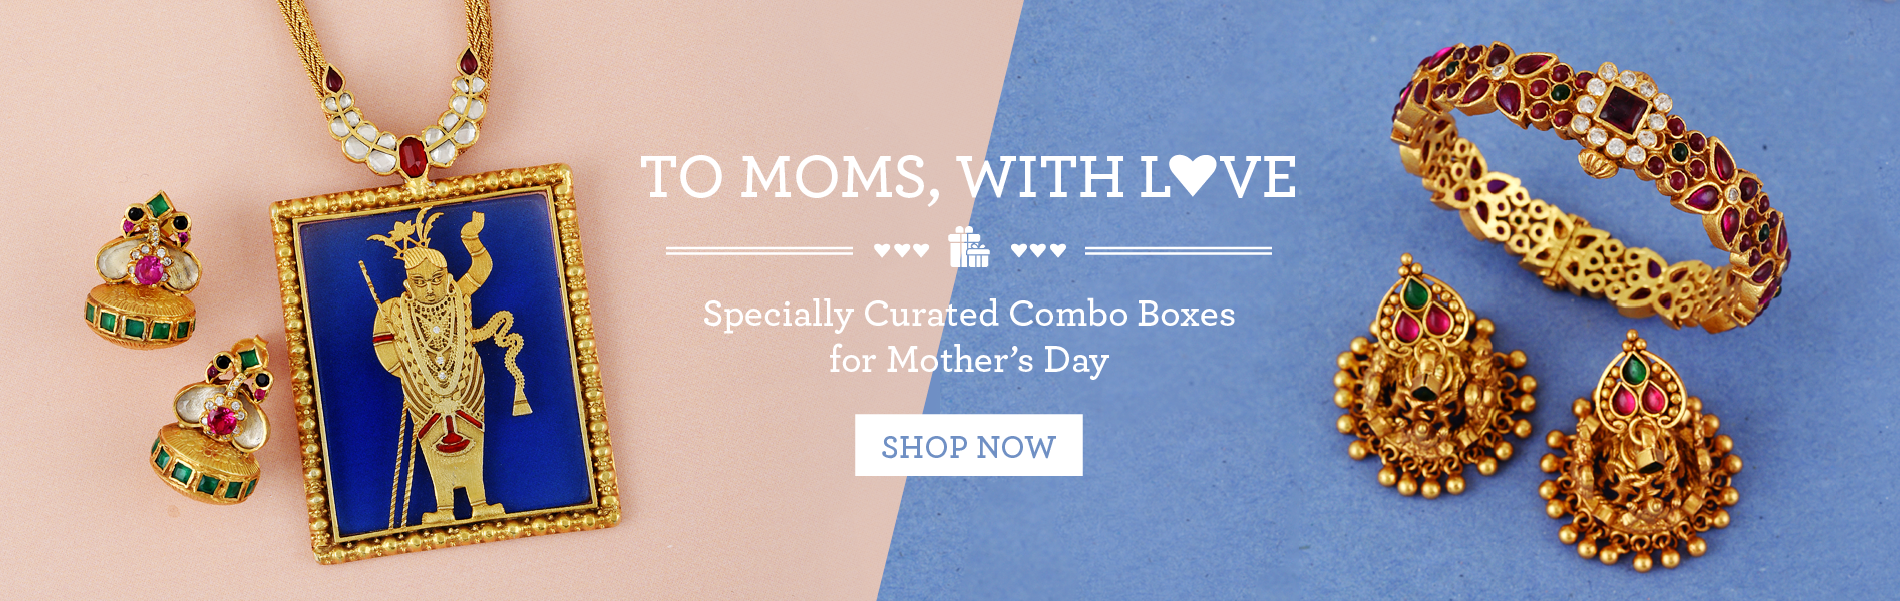 To Moms, With Love !